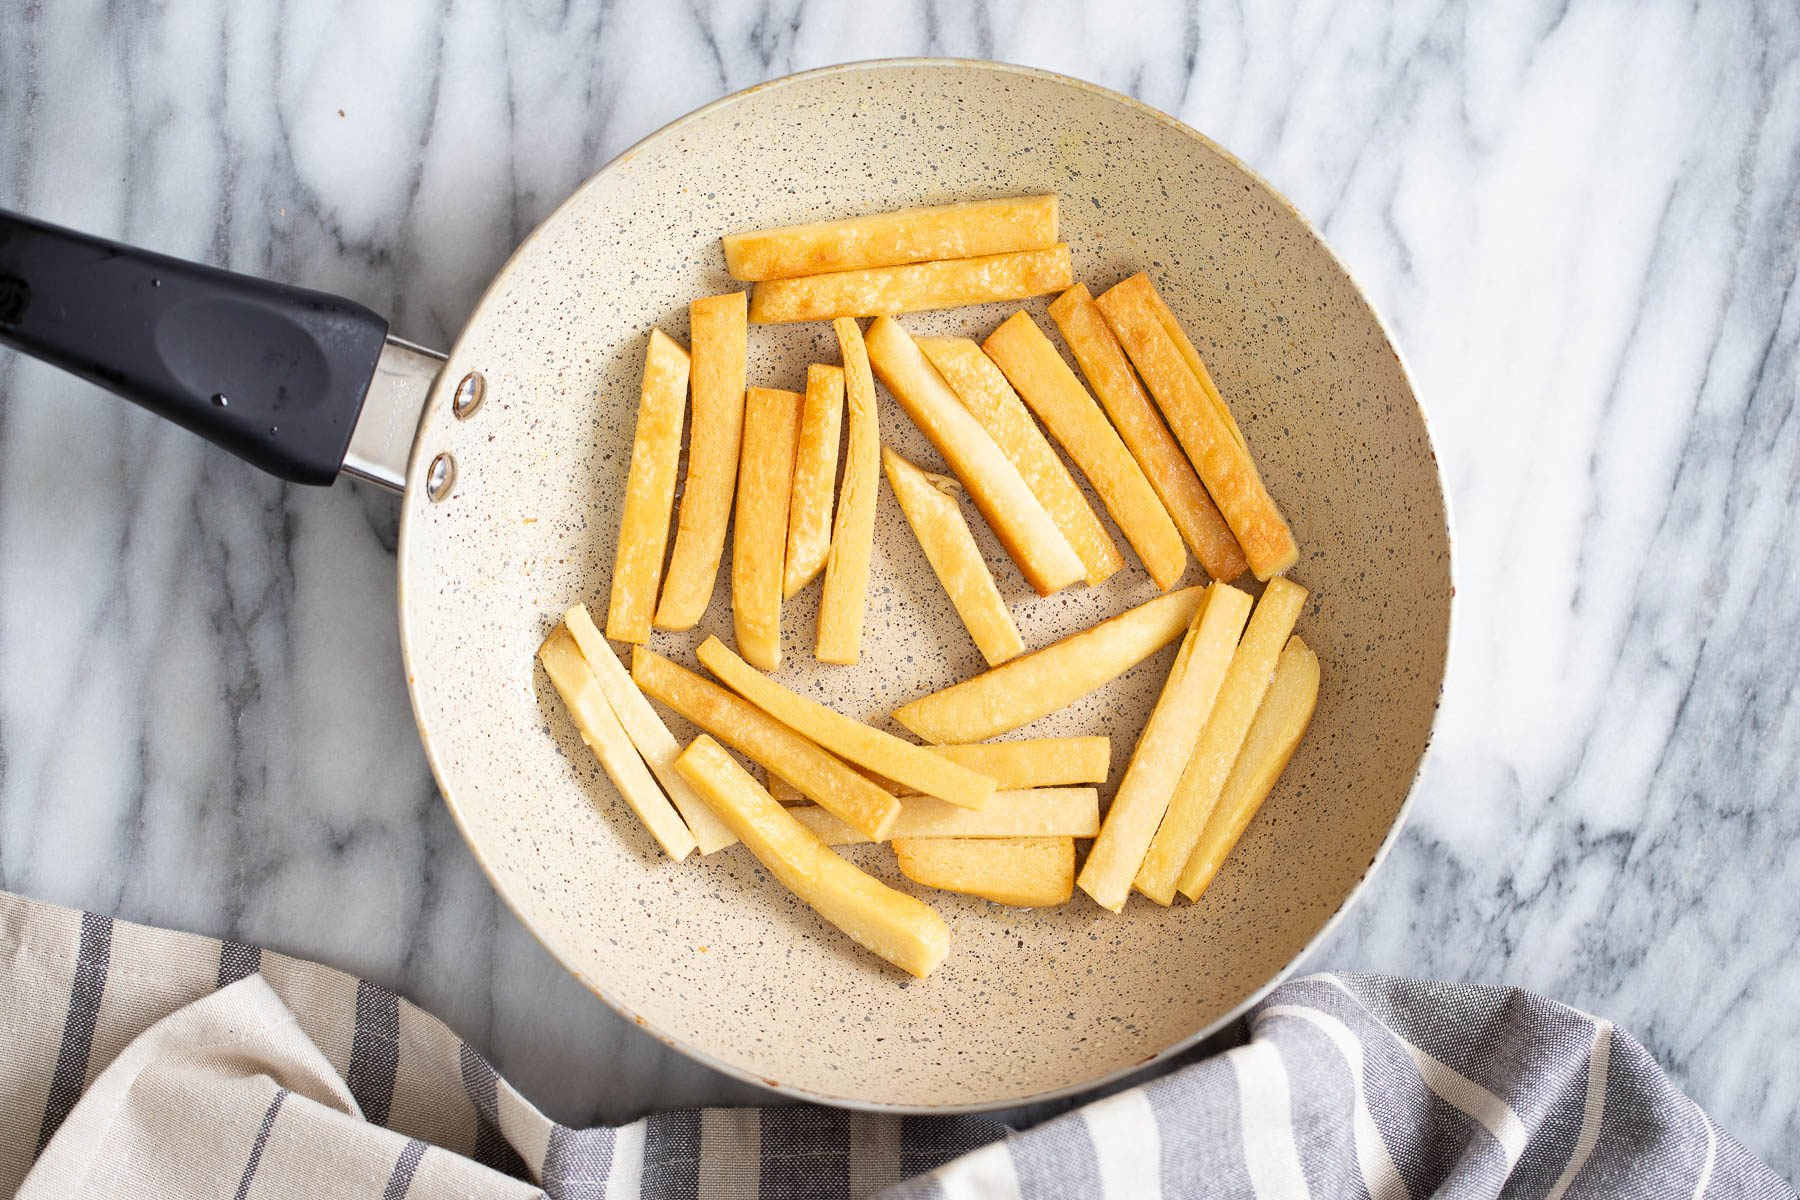 chickpea flour fries being pan-fried in a skillet